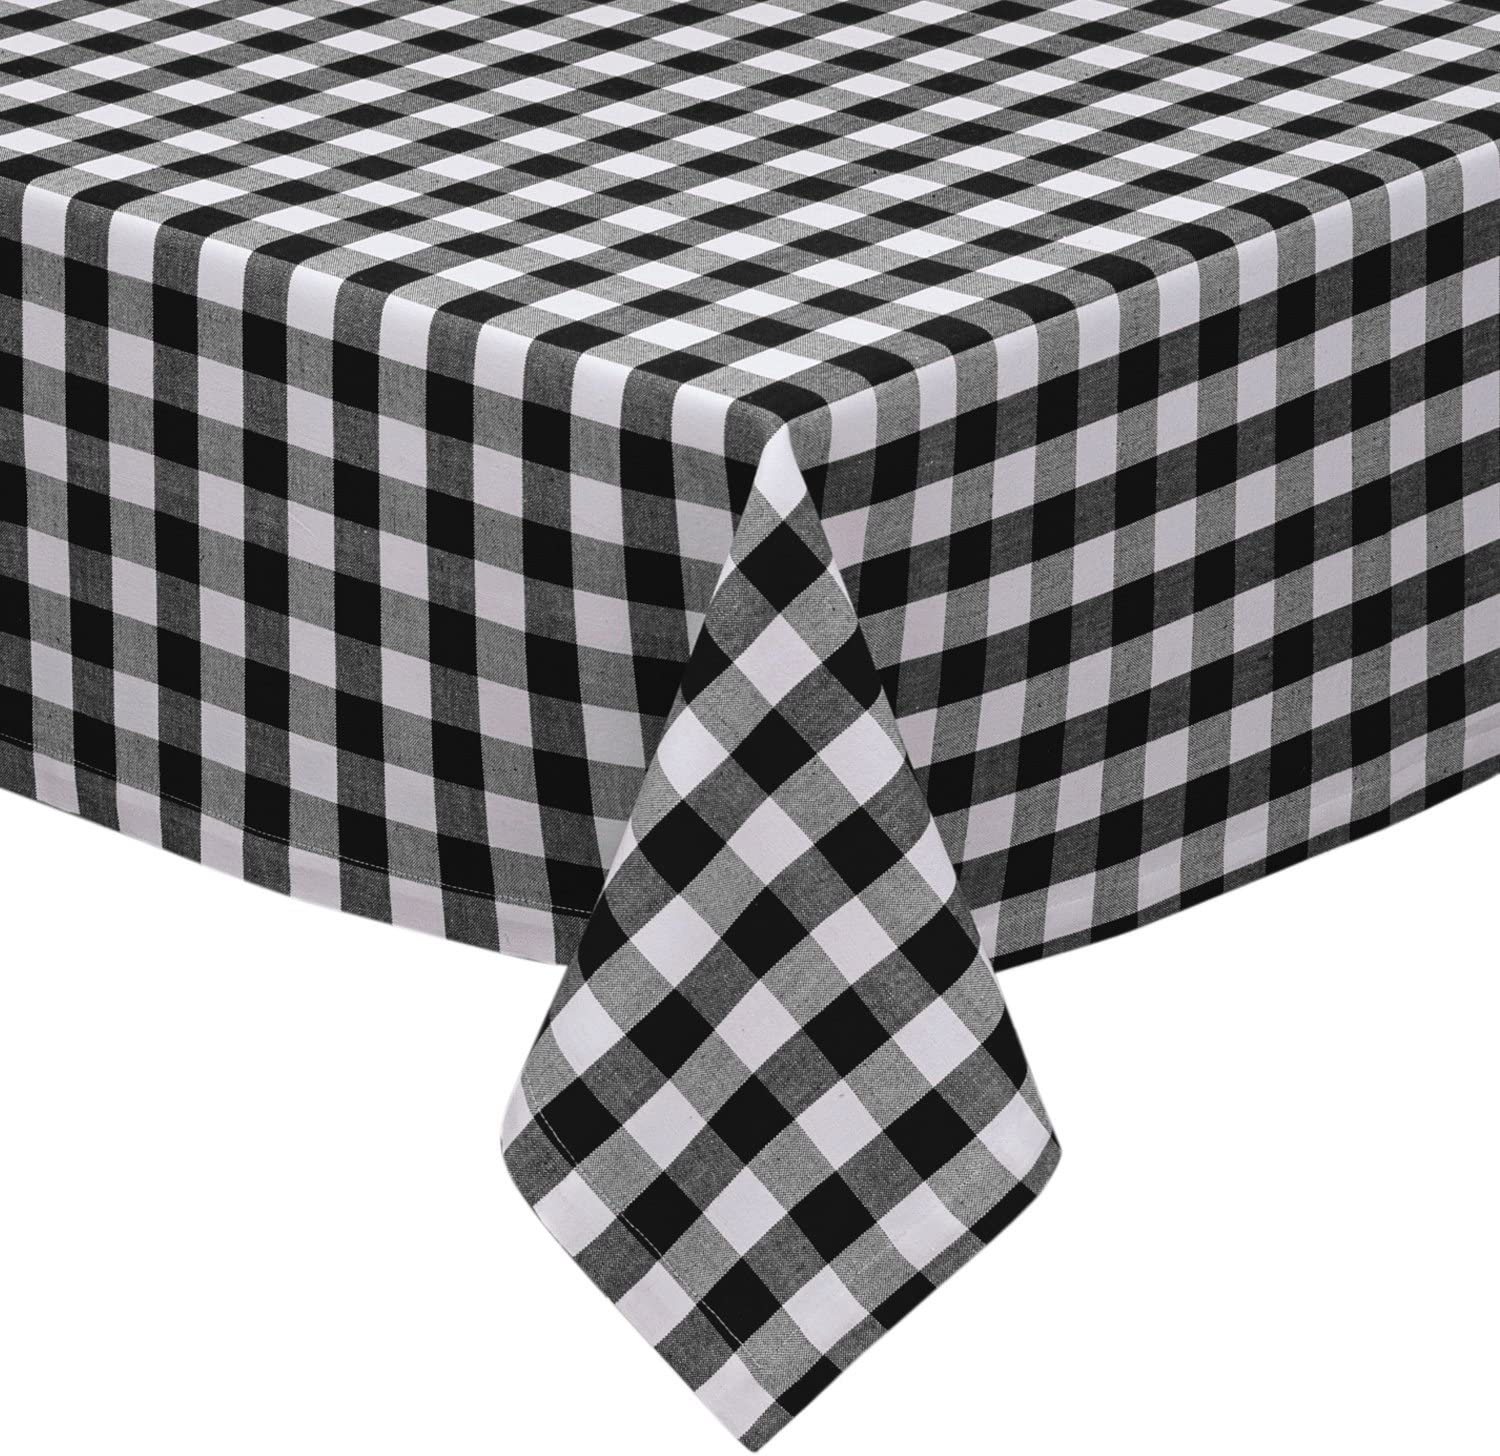 Bathroom And More Gingham Plaid Design Cotton Rich 58 X 84 Black And White Checkered Kitchen Dining Room Tablecloth Amazon Co Uk Kitchen Home